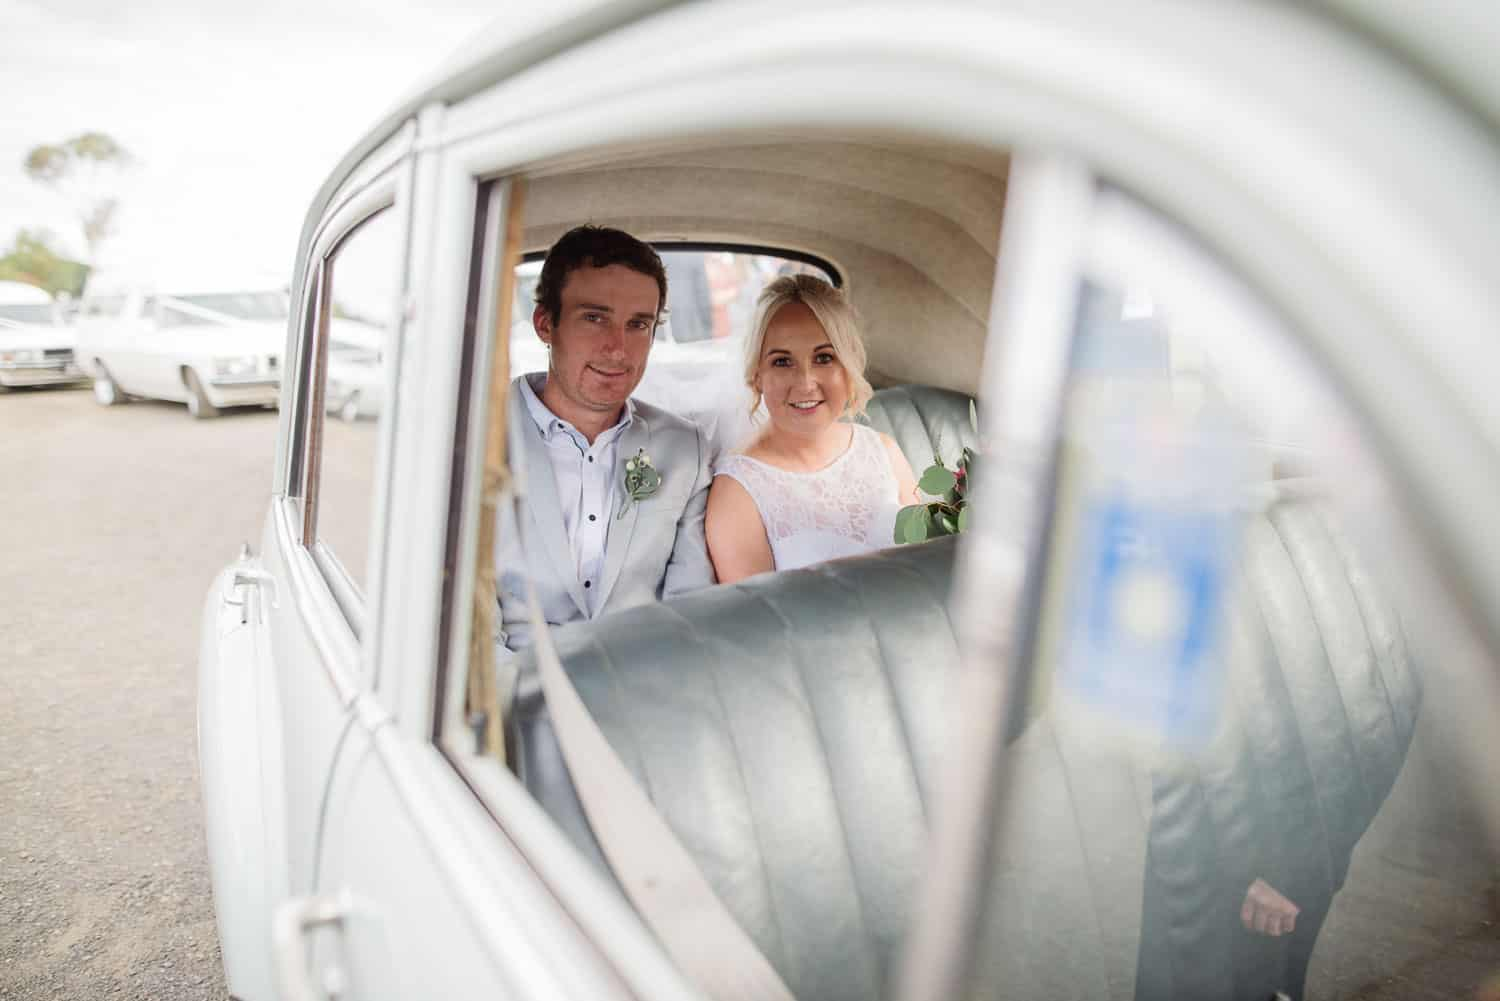 Bride and Groom sitting in their wedding car